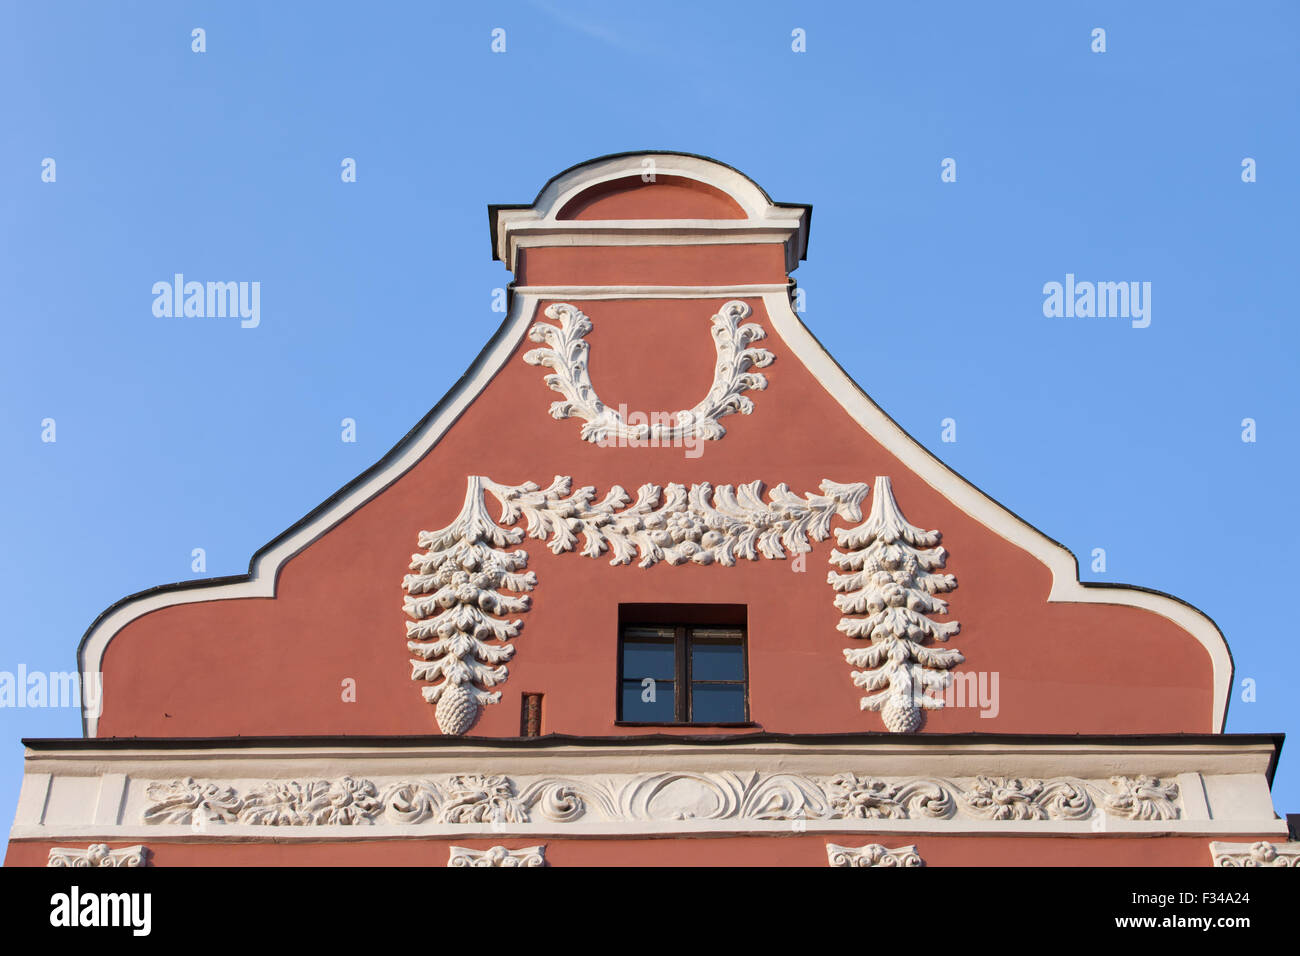 Historical house gable with floral motif ornamentation in Torun, Poland. - Stock Image